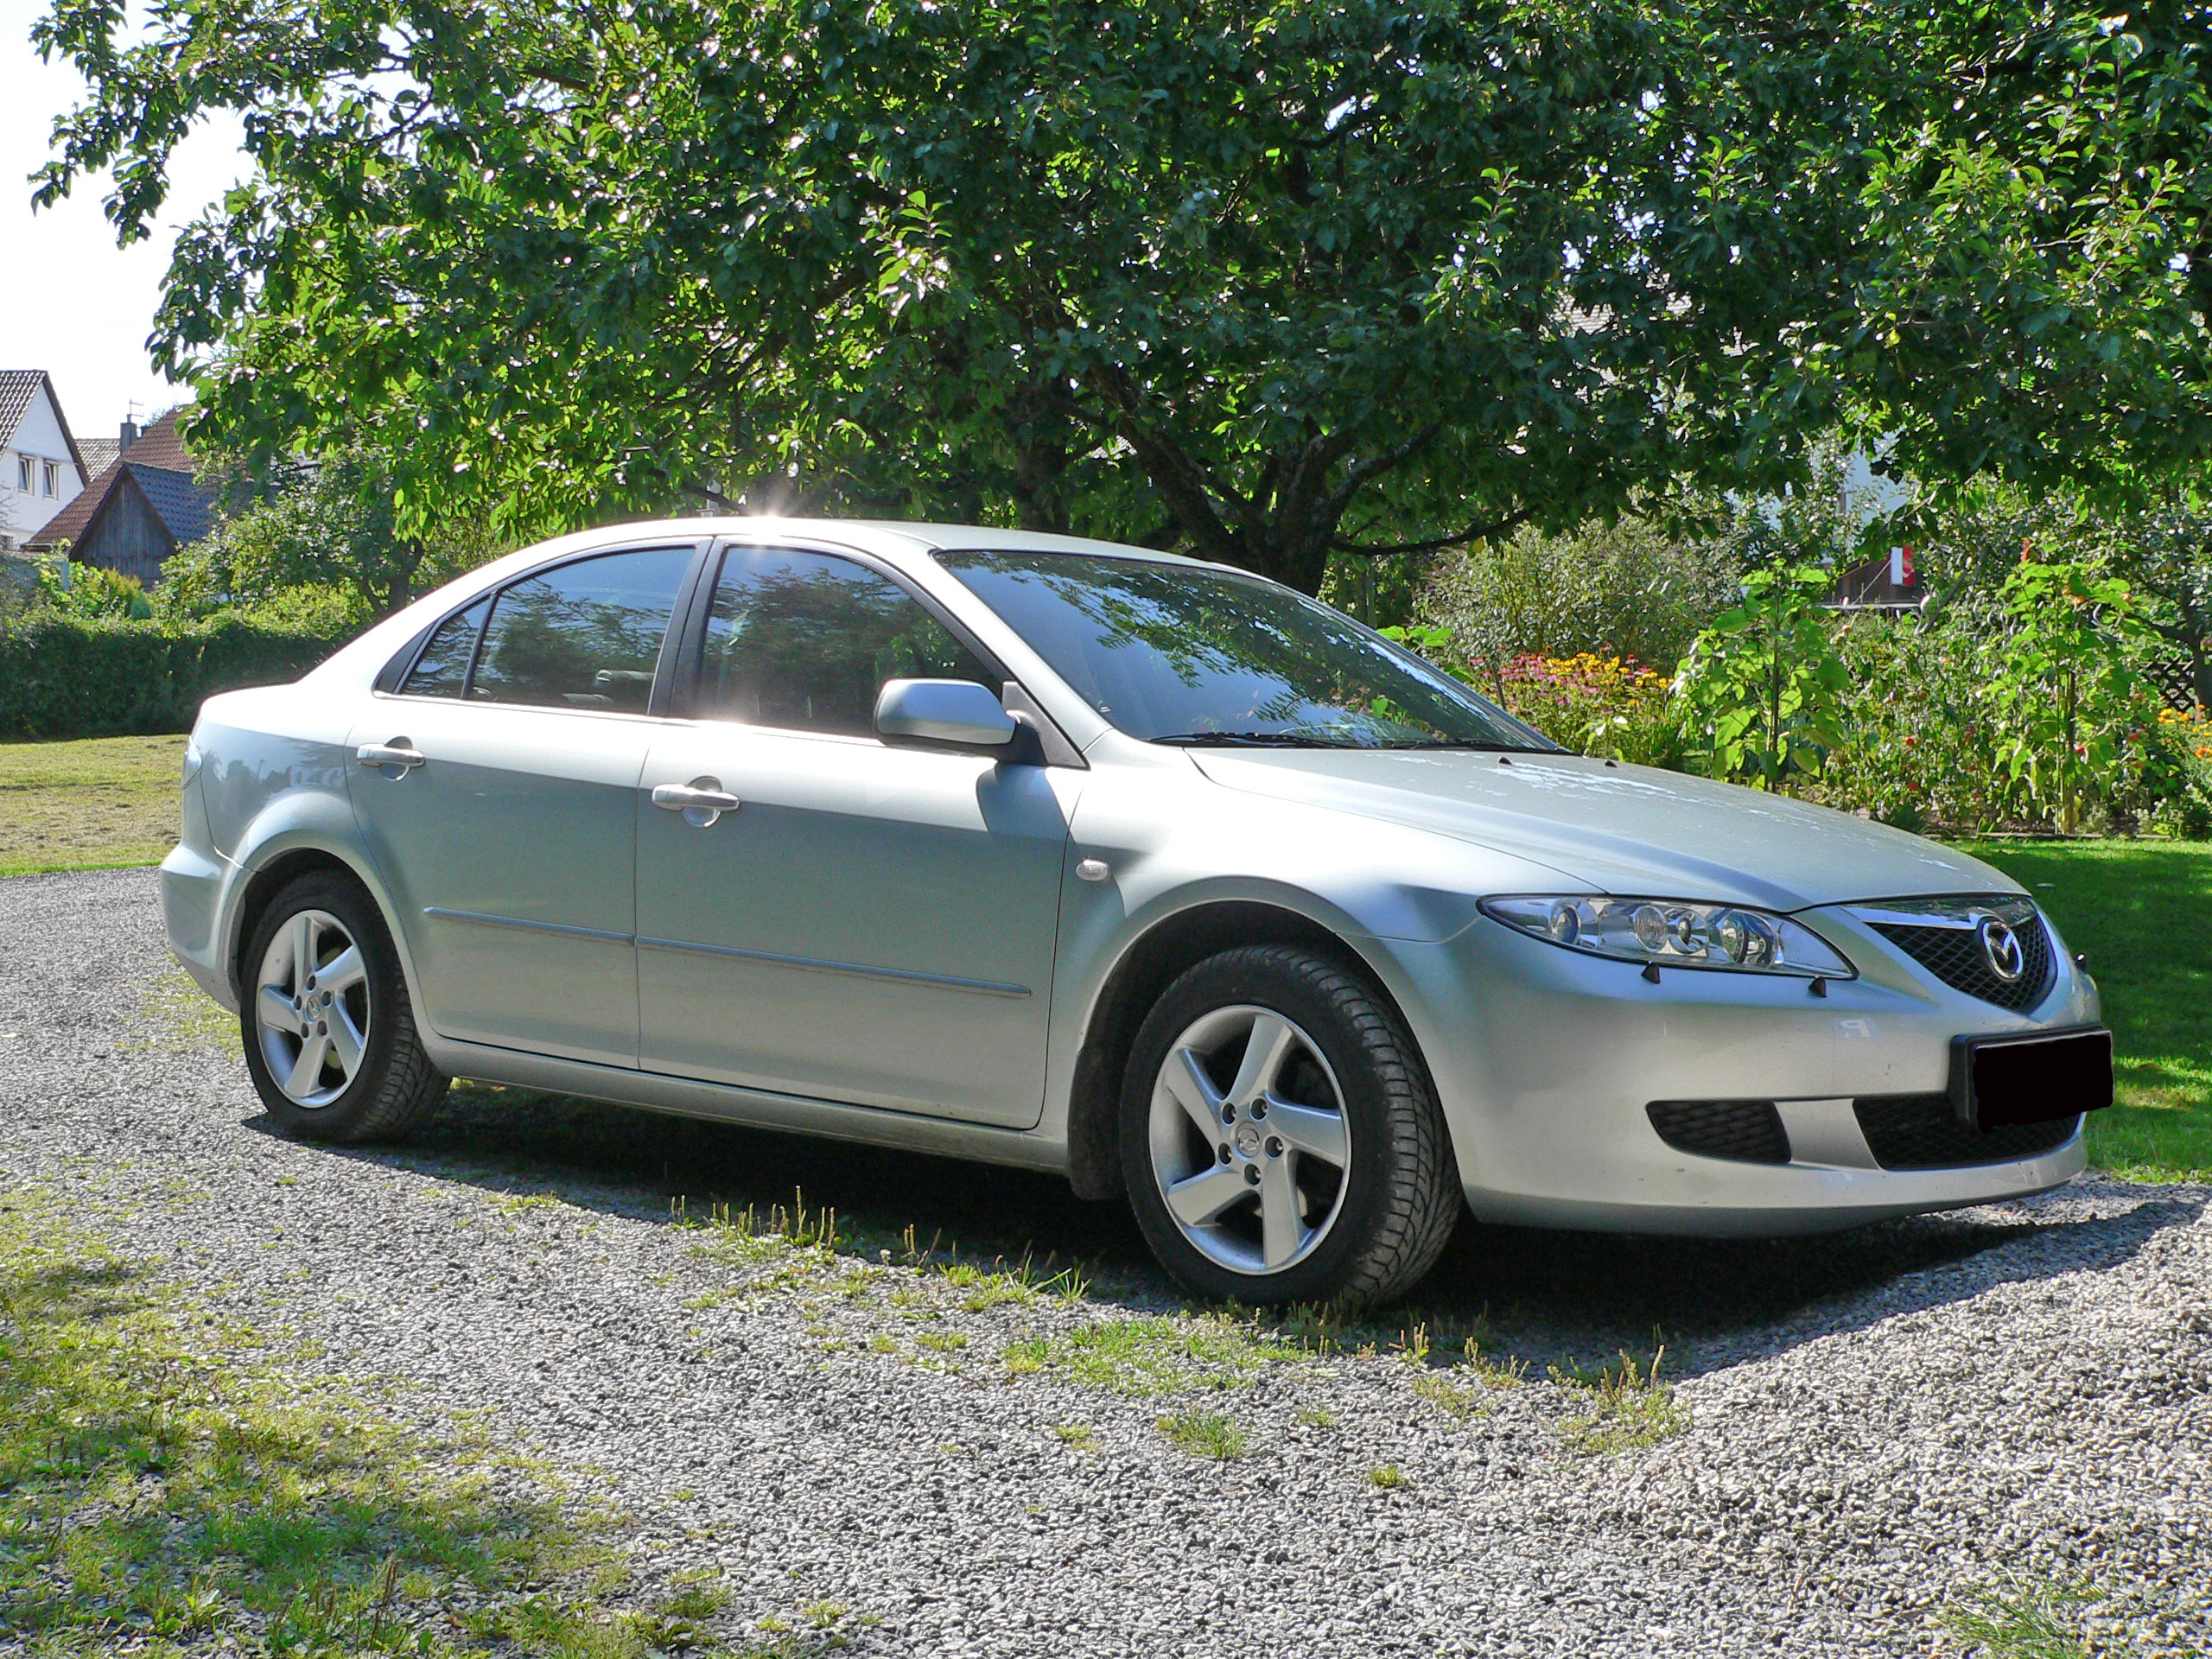 2001 mazda 6 sport mzr automatic related infomation. Black Bedroom Furniture Sets. Home Design Ideas